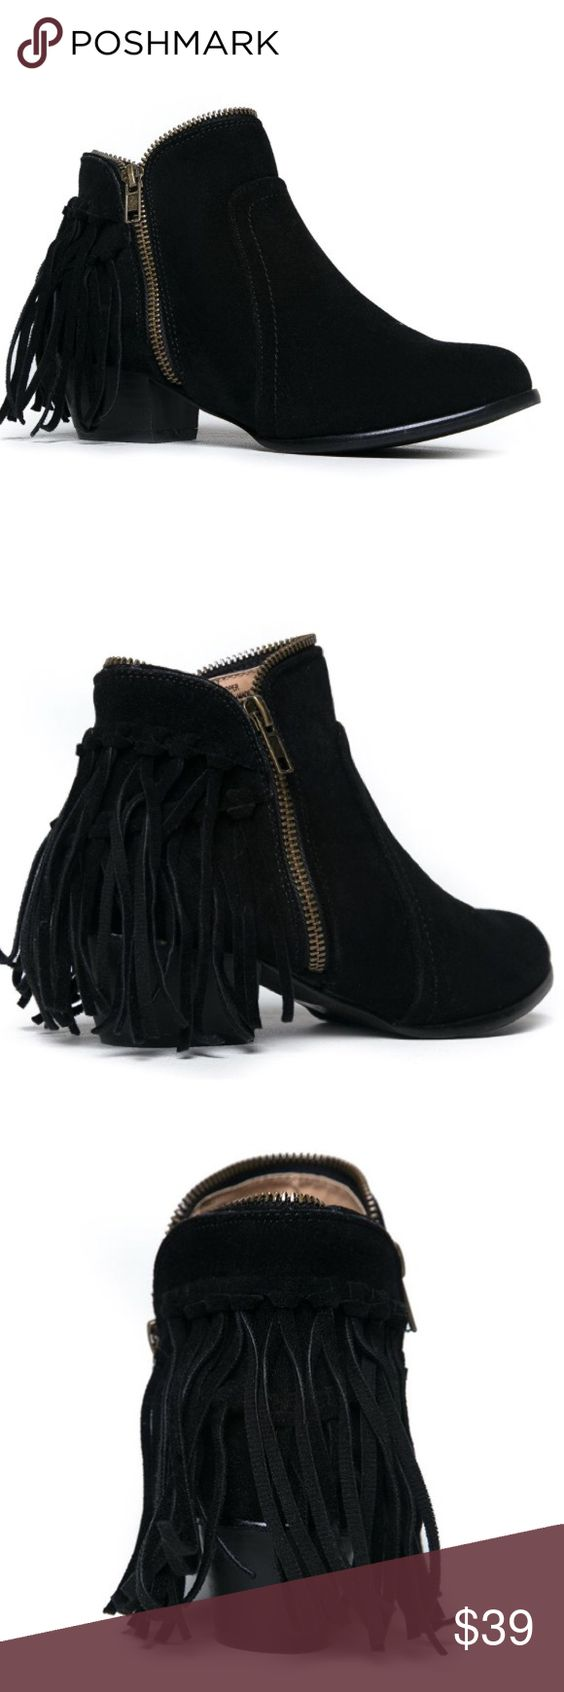 Low heel fringe 7 ankle boots bootie black new Brand new in a size 7. Shoes Ankle Boots & Booties